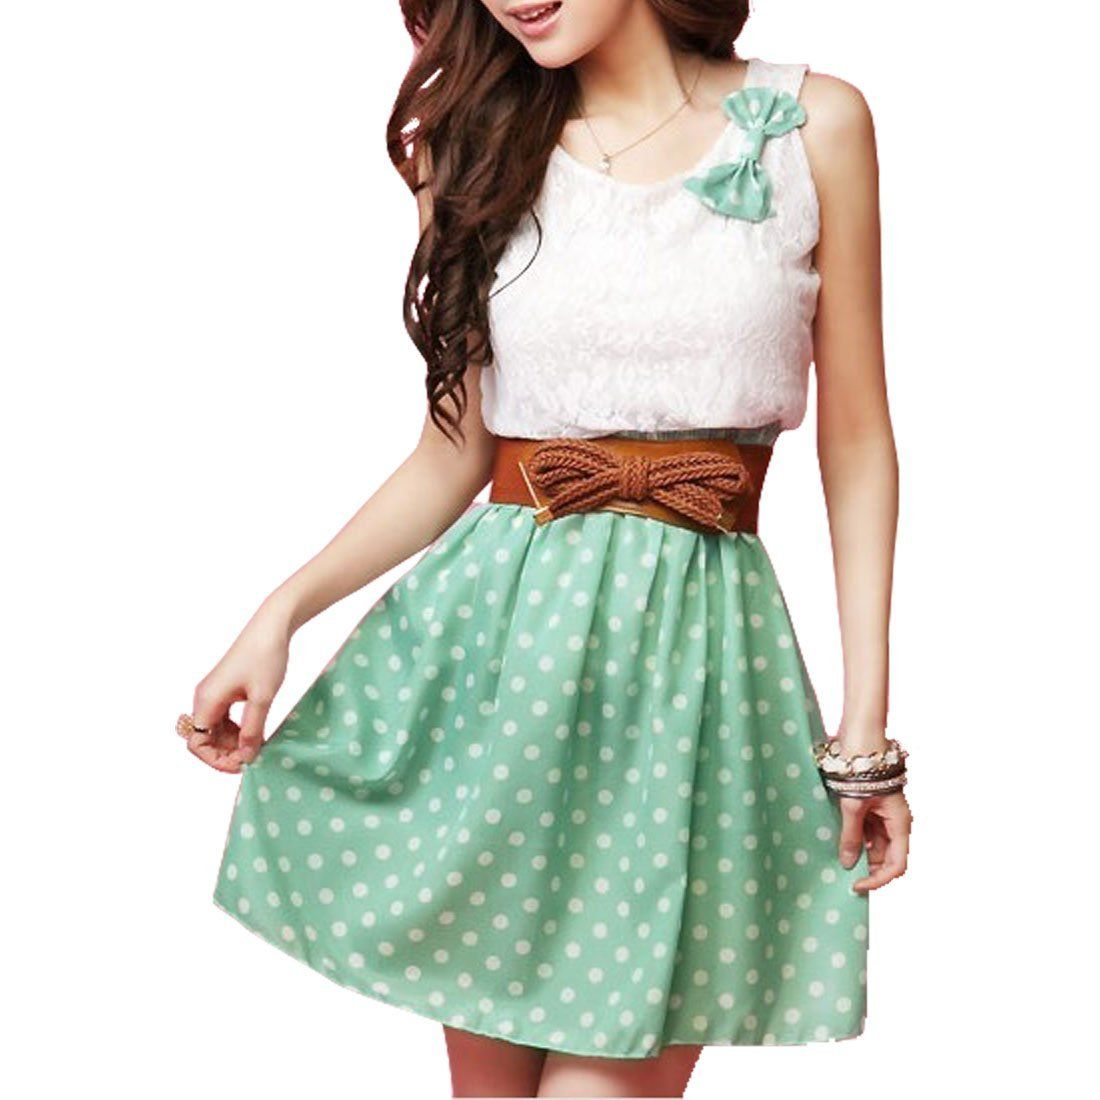 Cute Clothes for Teens